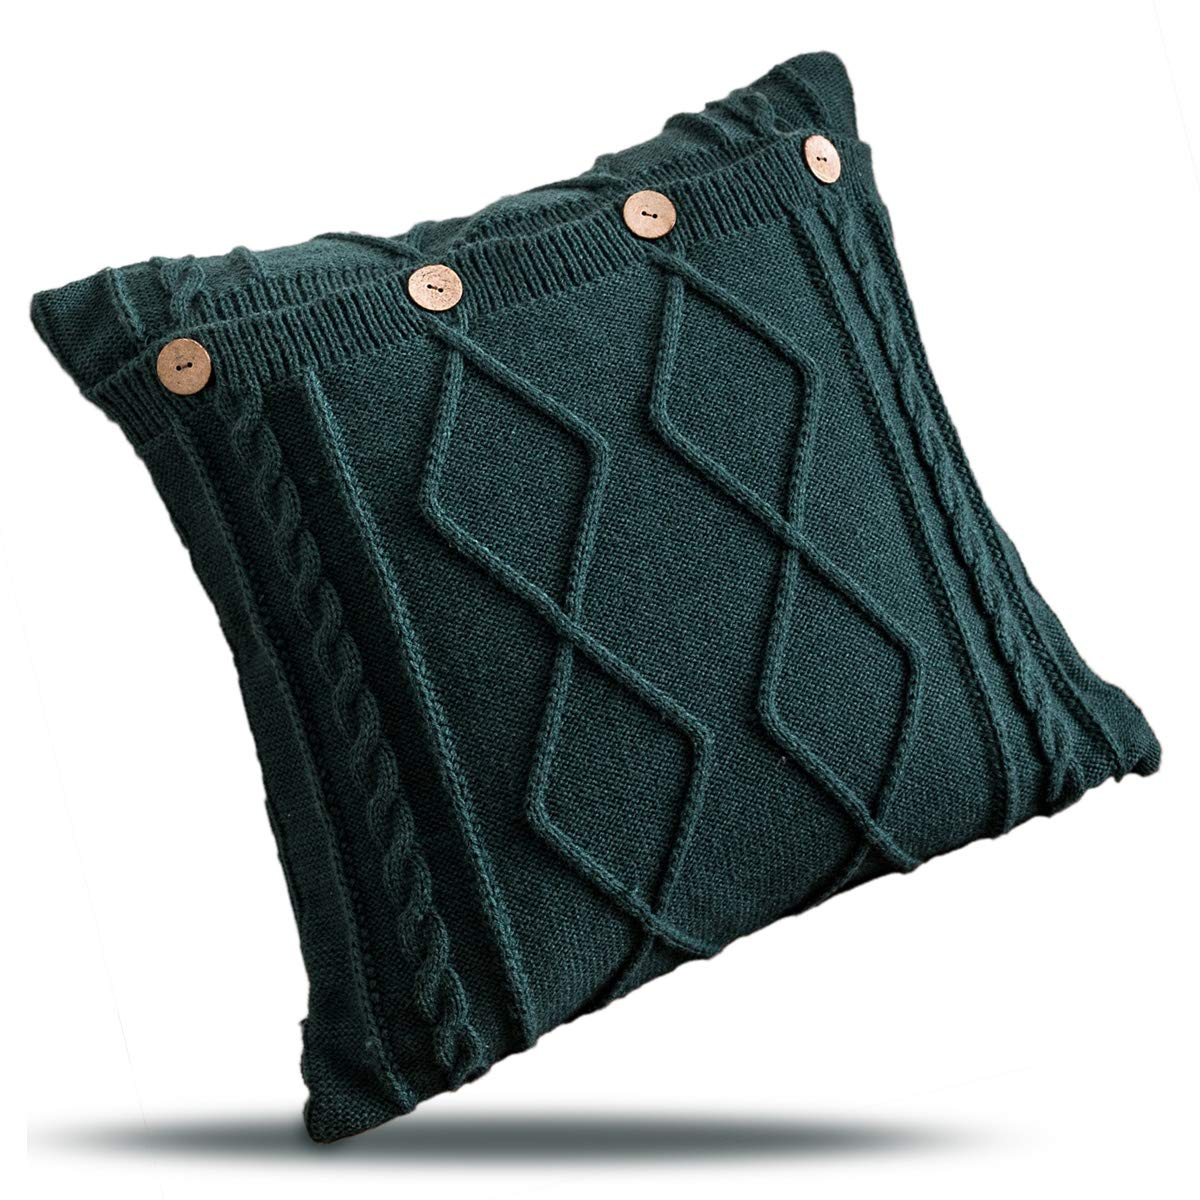 """Juanssifer Dark Green Throw Pillow Cover for Couch Sofa Bed,Cotton Decorative Knitted Patterns Square Pillow Case Cushion Covers, Dark Green Color 18"""" X 18"""" (Dark Green)"""